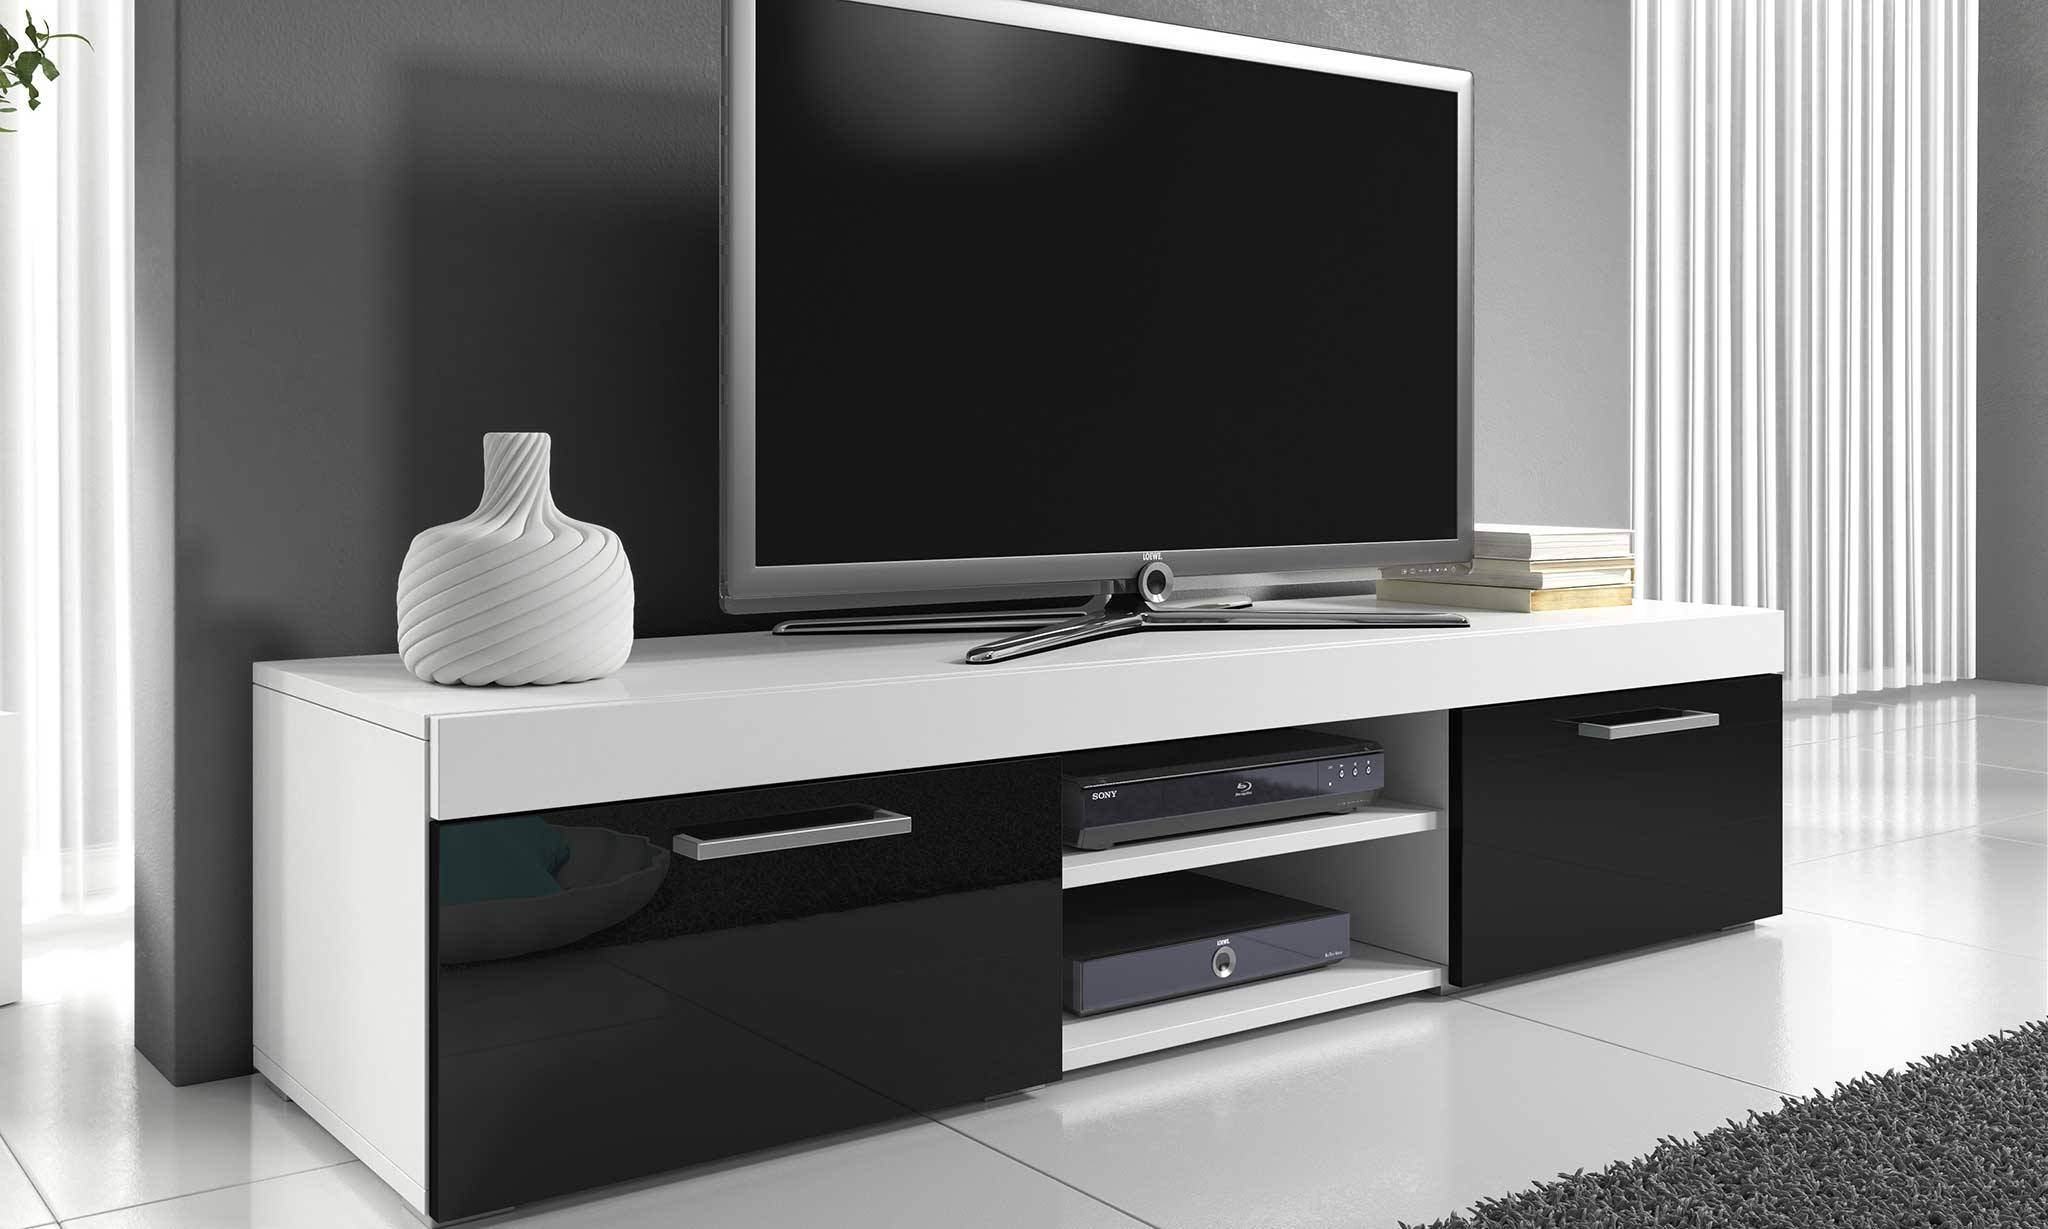 Groupon Goods Mambo Furniture: TV Cabinet/White with Black Gloss Front